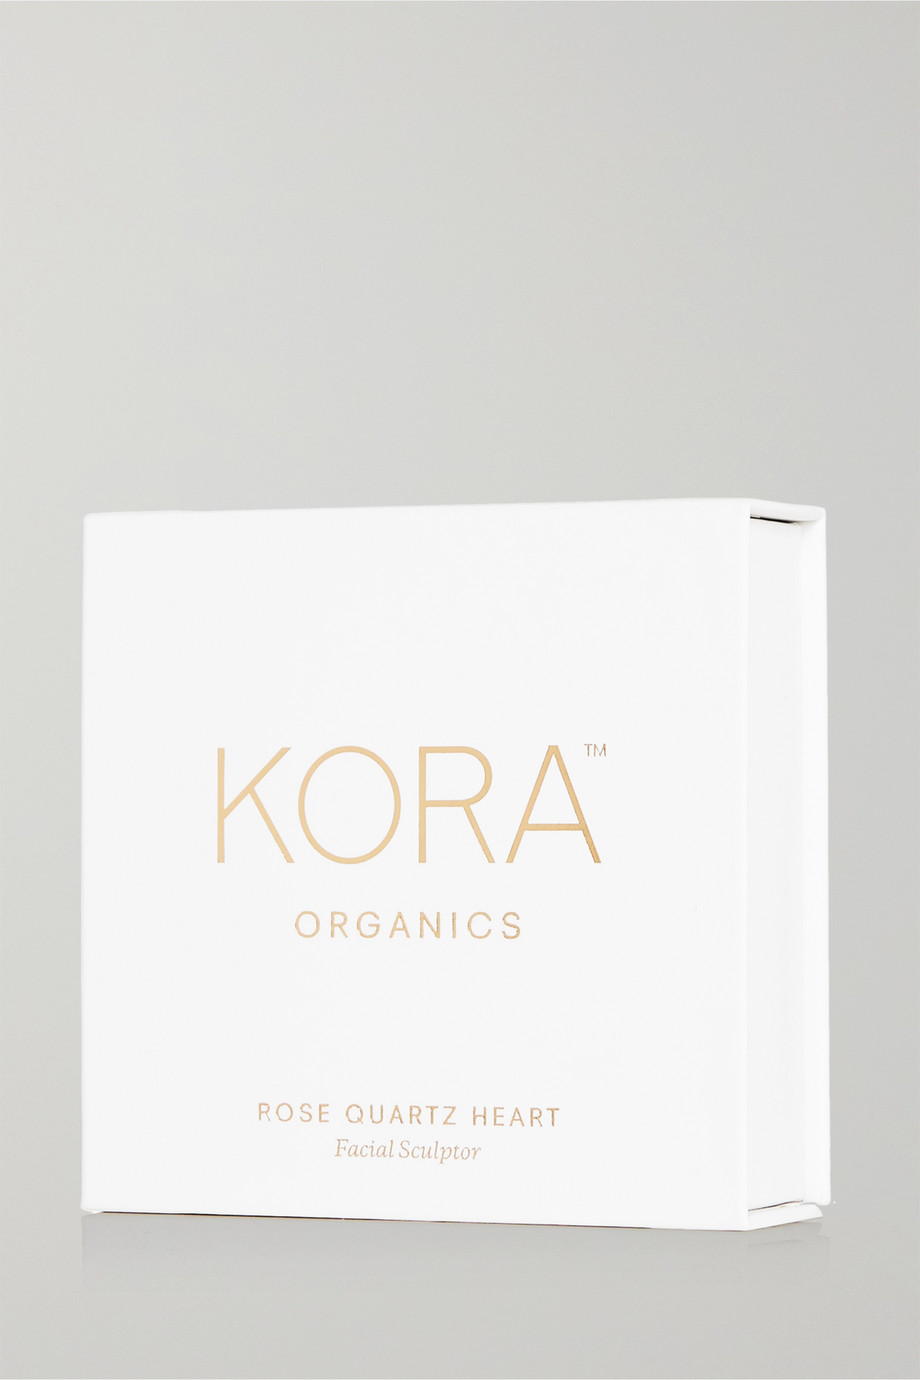 KORA Organics Rose Quartz Heart Facial Sculptor